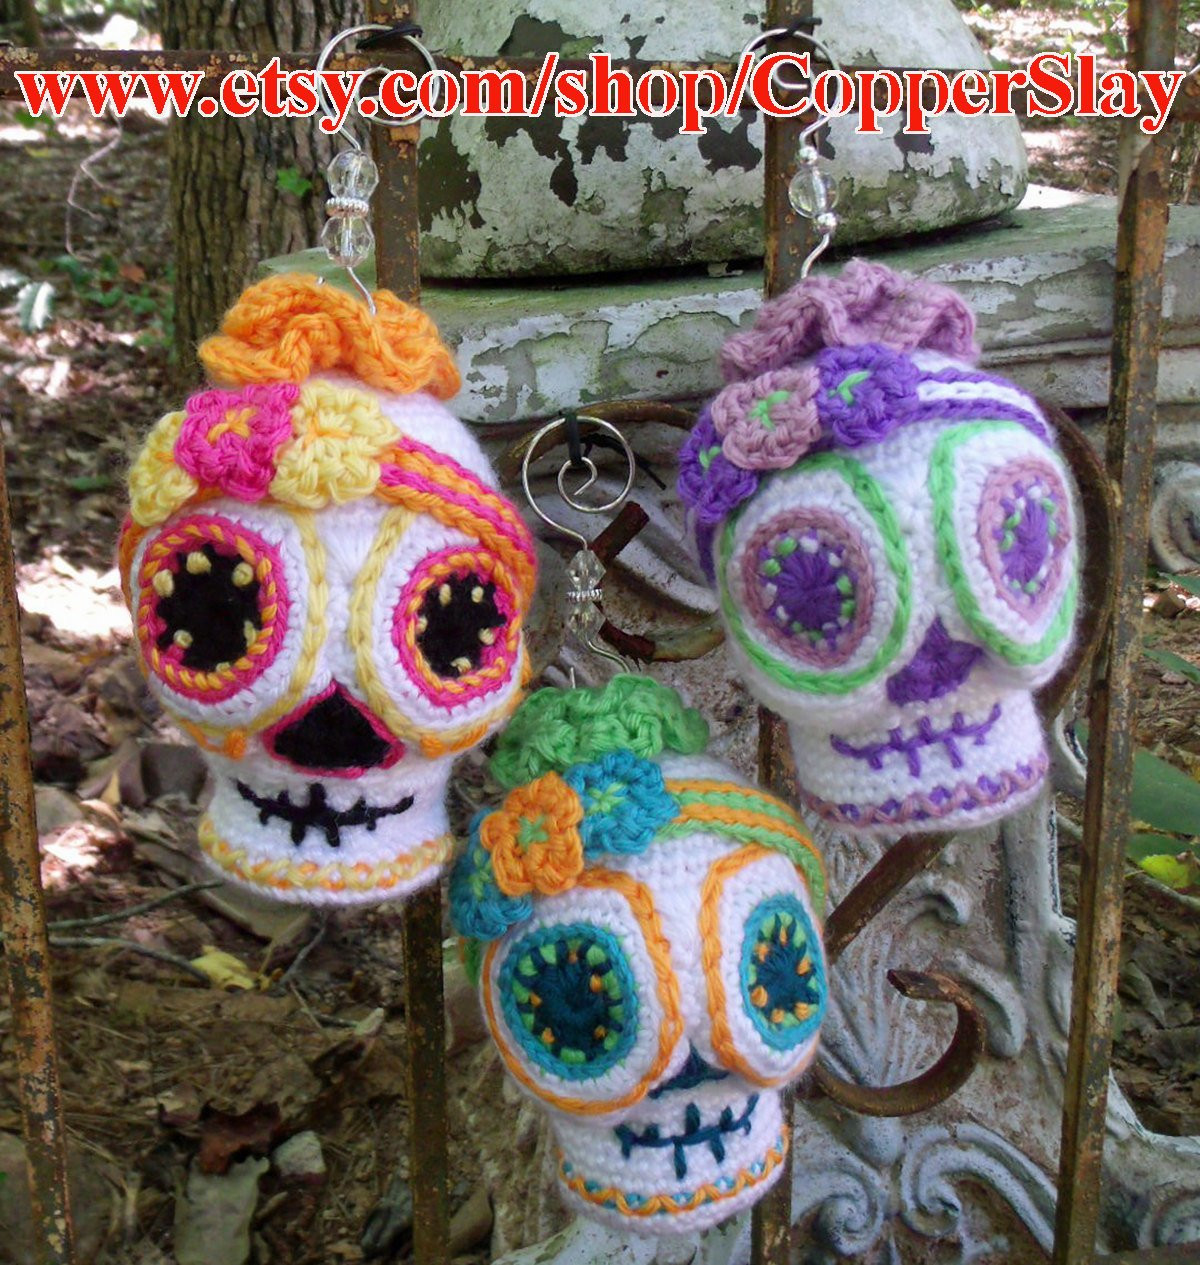 Luxury Sugar Skull Crochet Pattern Amigurumi Day Of the Dead Crochet Sugar Skull Of Incredible 47 Pictures Crochet Sugar Skull